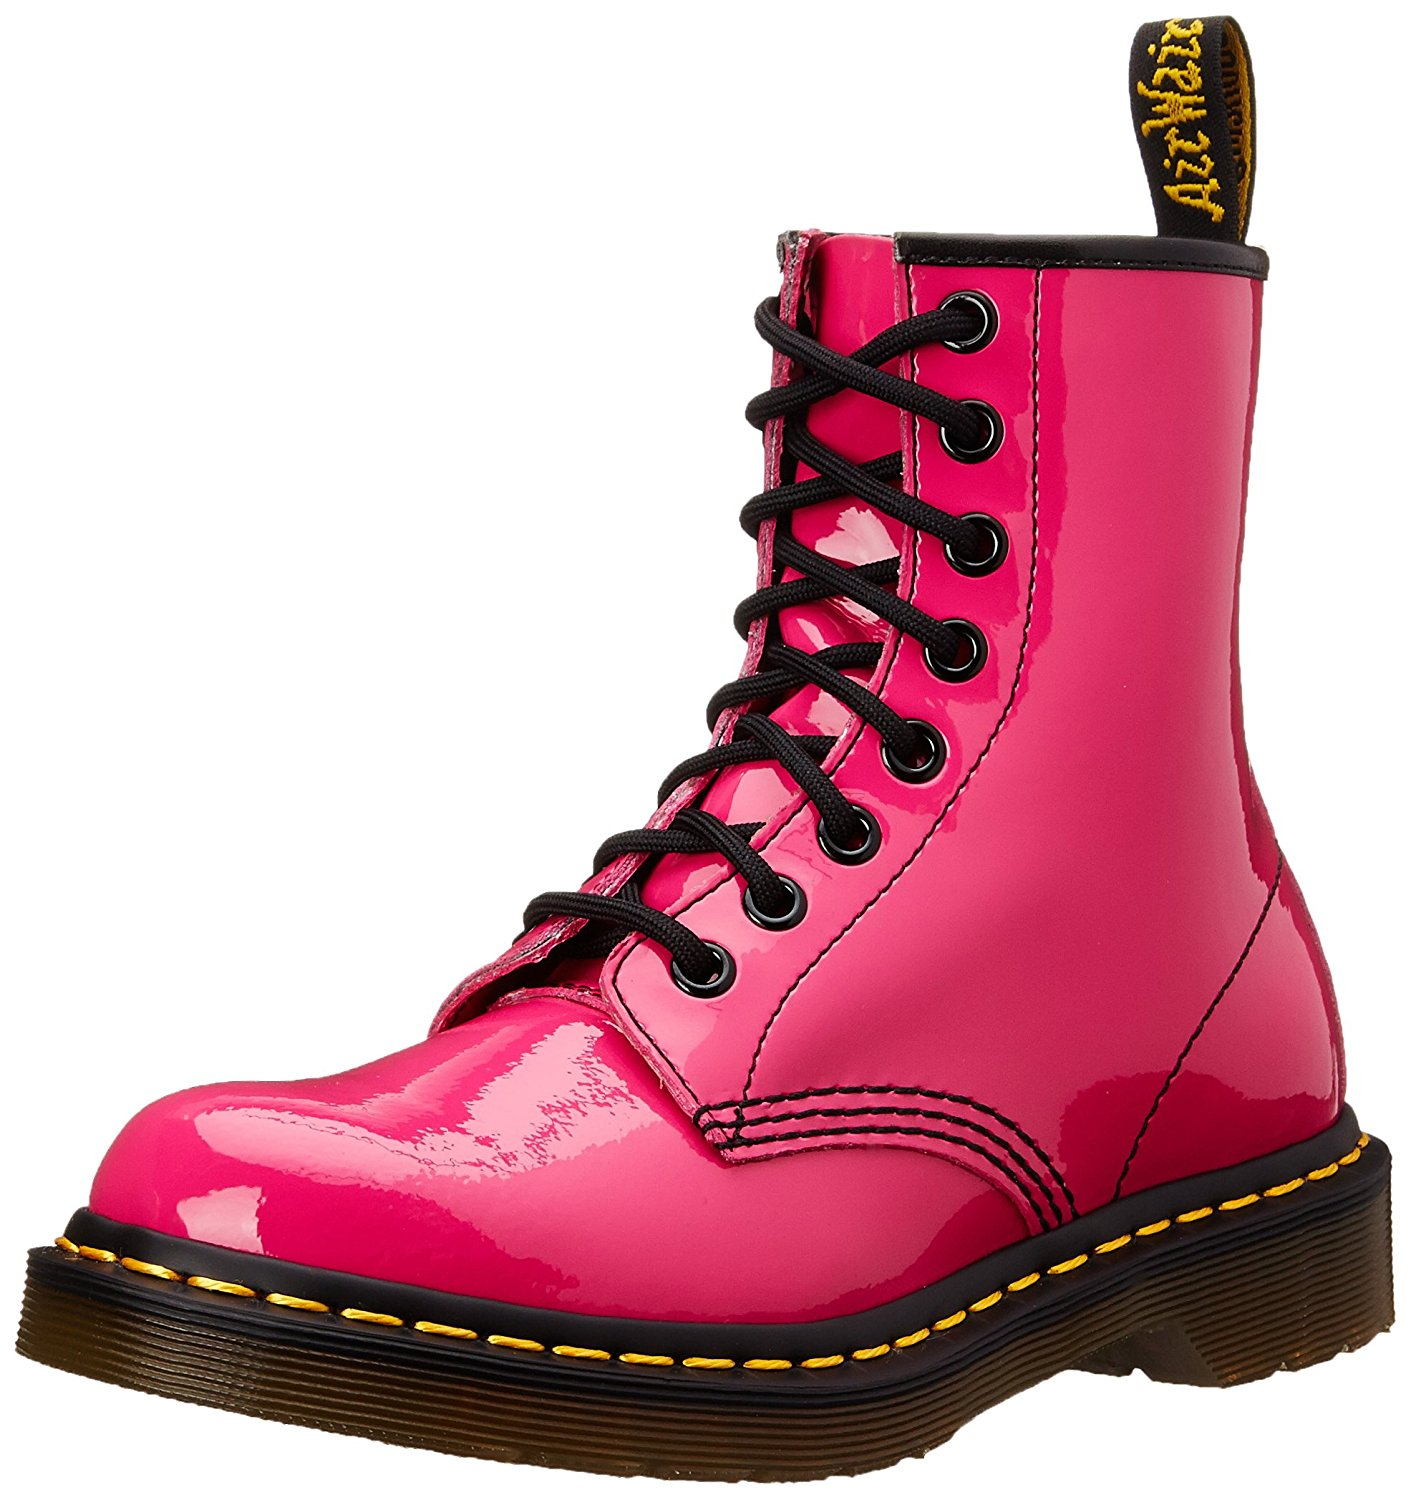 Get Quotations · Dr. Marten s Women s 1460 8-Eye Patent Leather Boots 25eed96e9